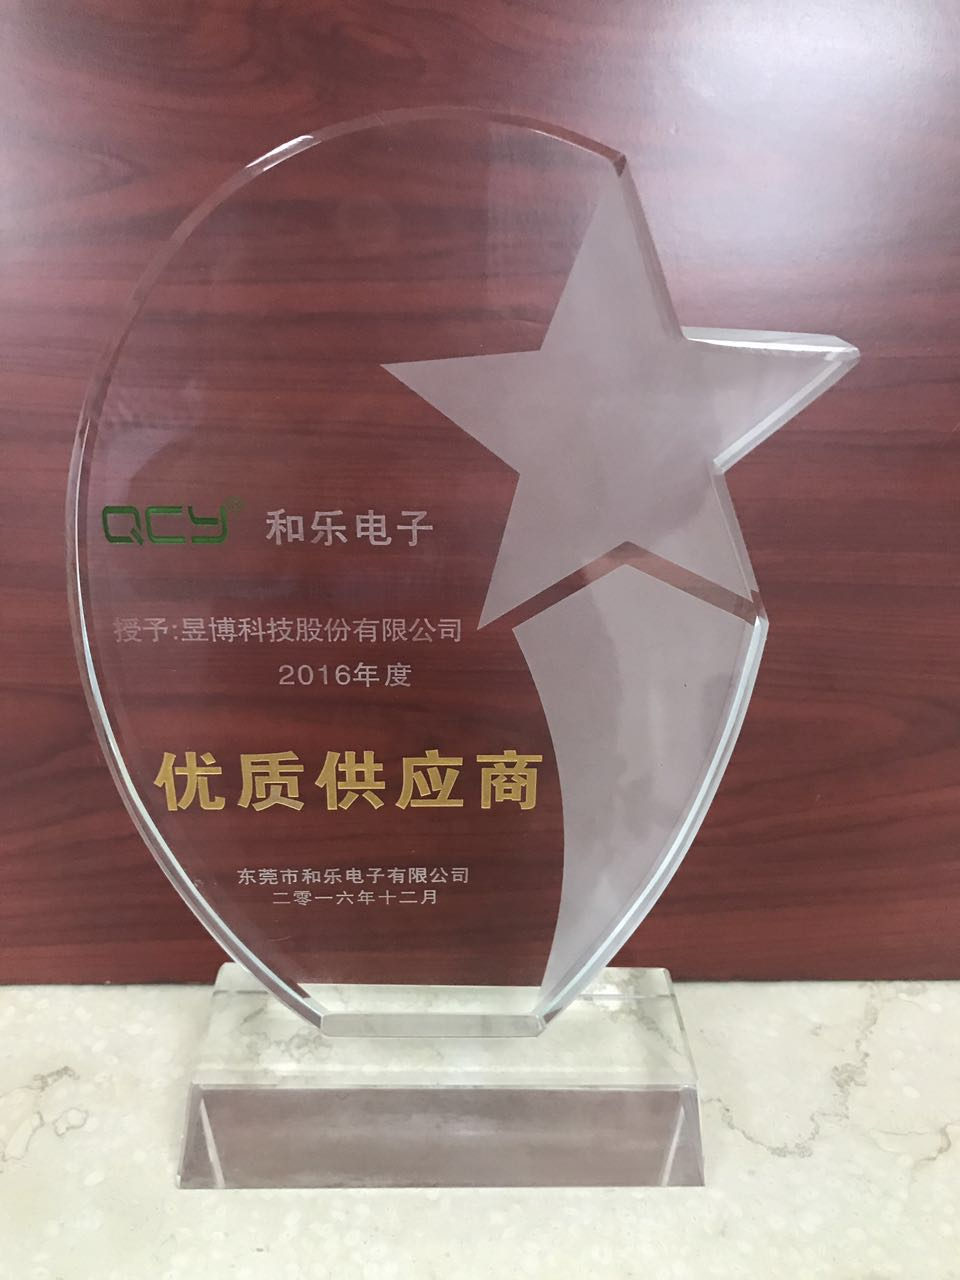 2016 Best Supplier Award